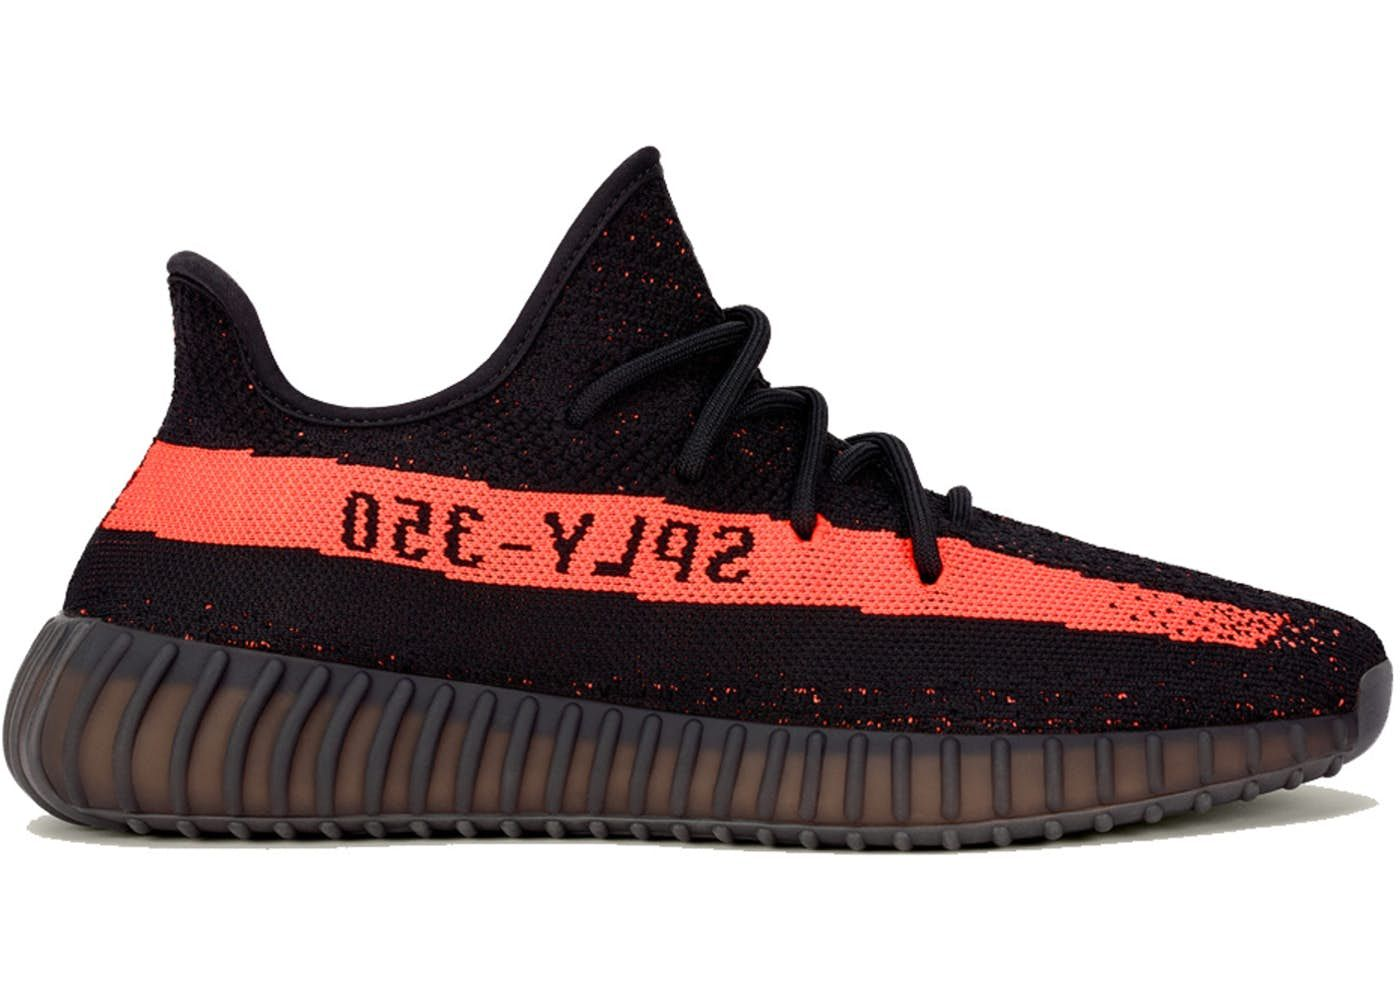 Adidas Yeezy Boost 350 V2 Core Black Red With Images Adidas